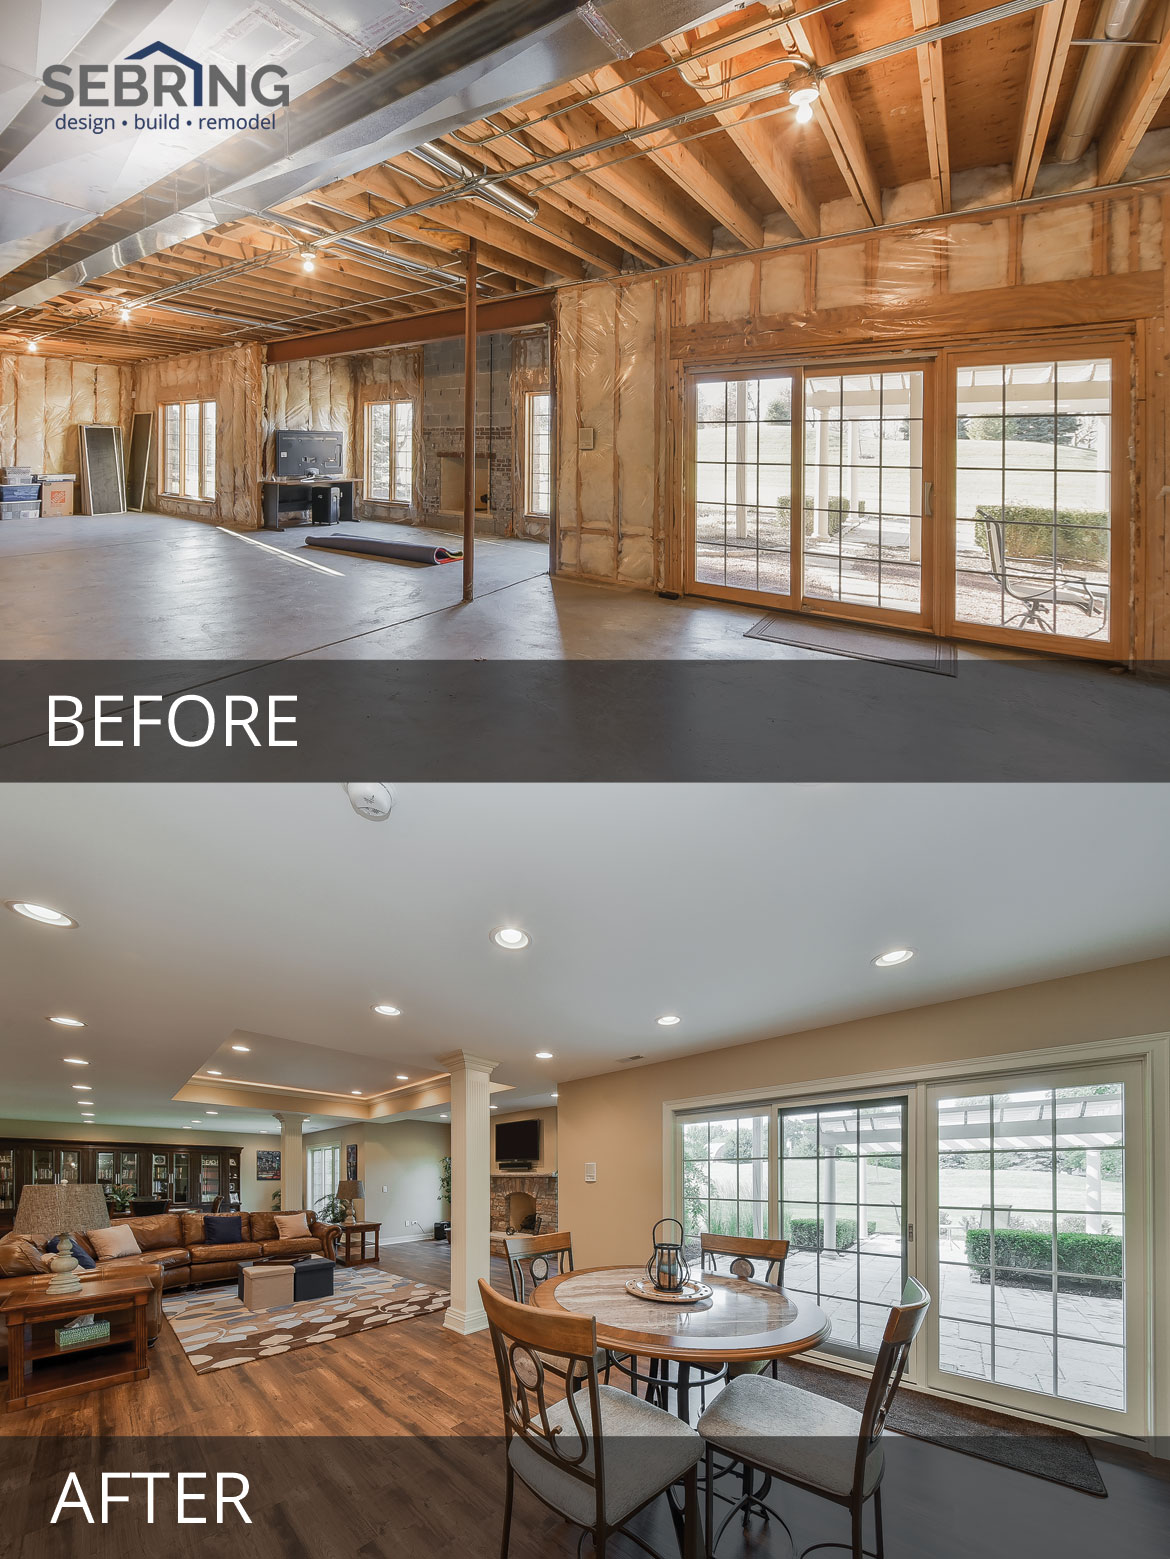 Bill S Basement Remodel Before After Pictures